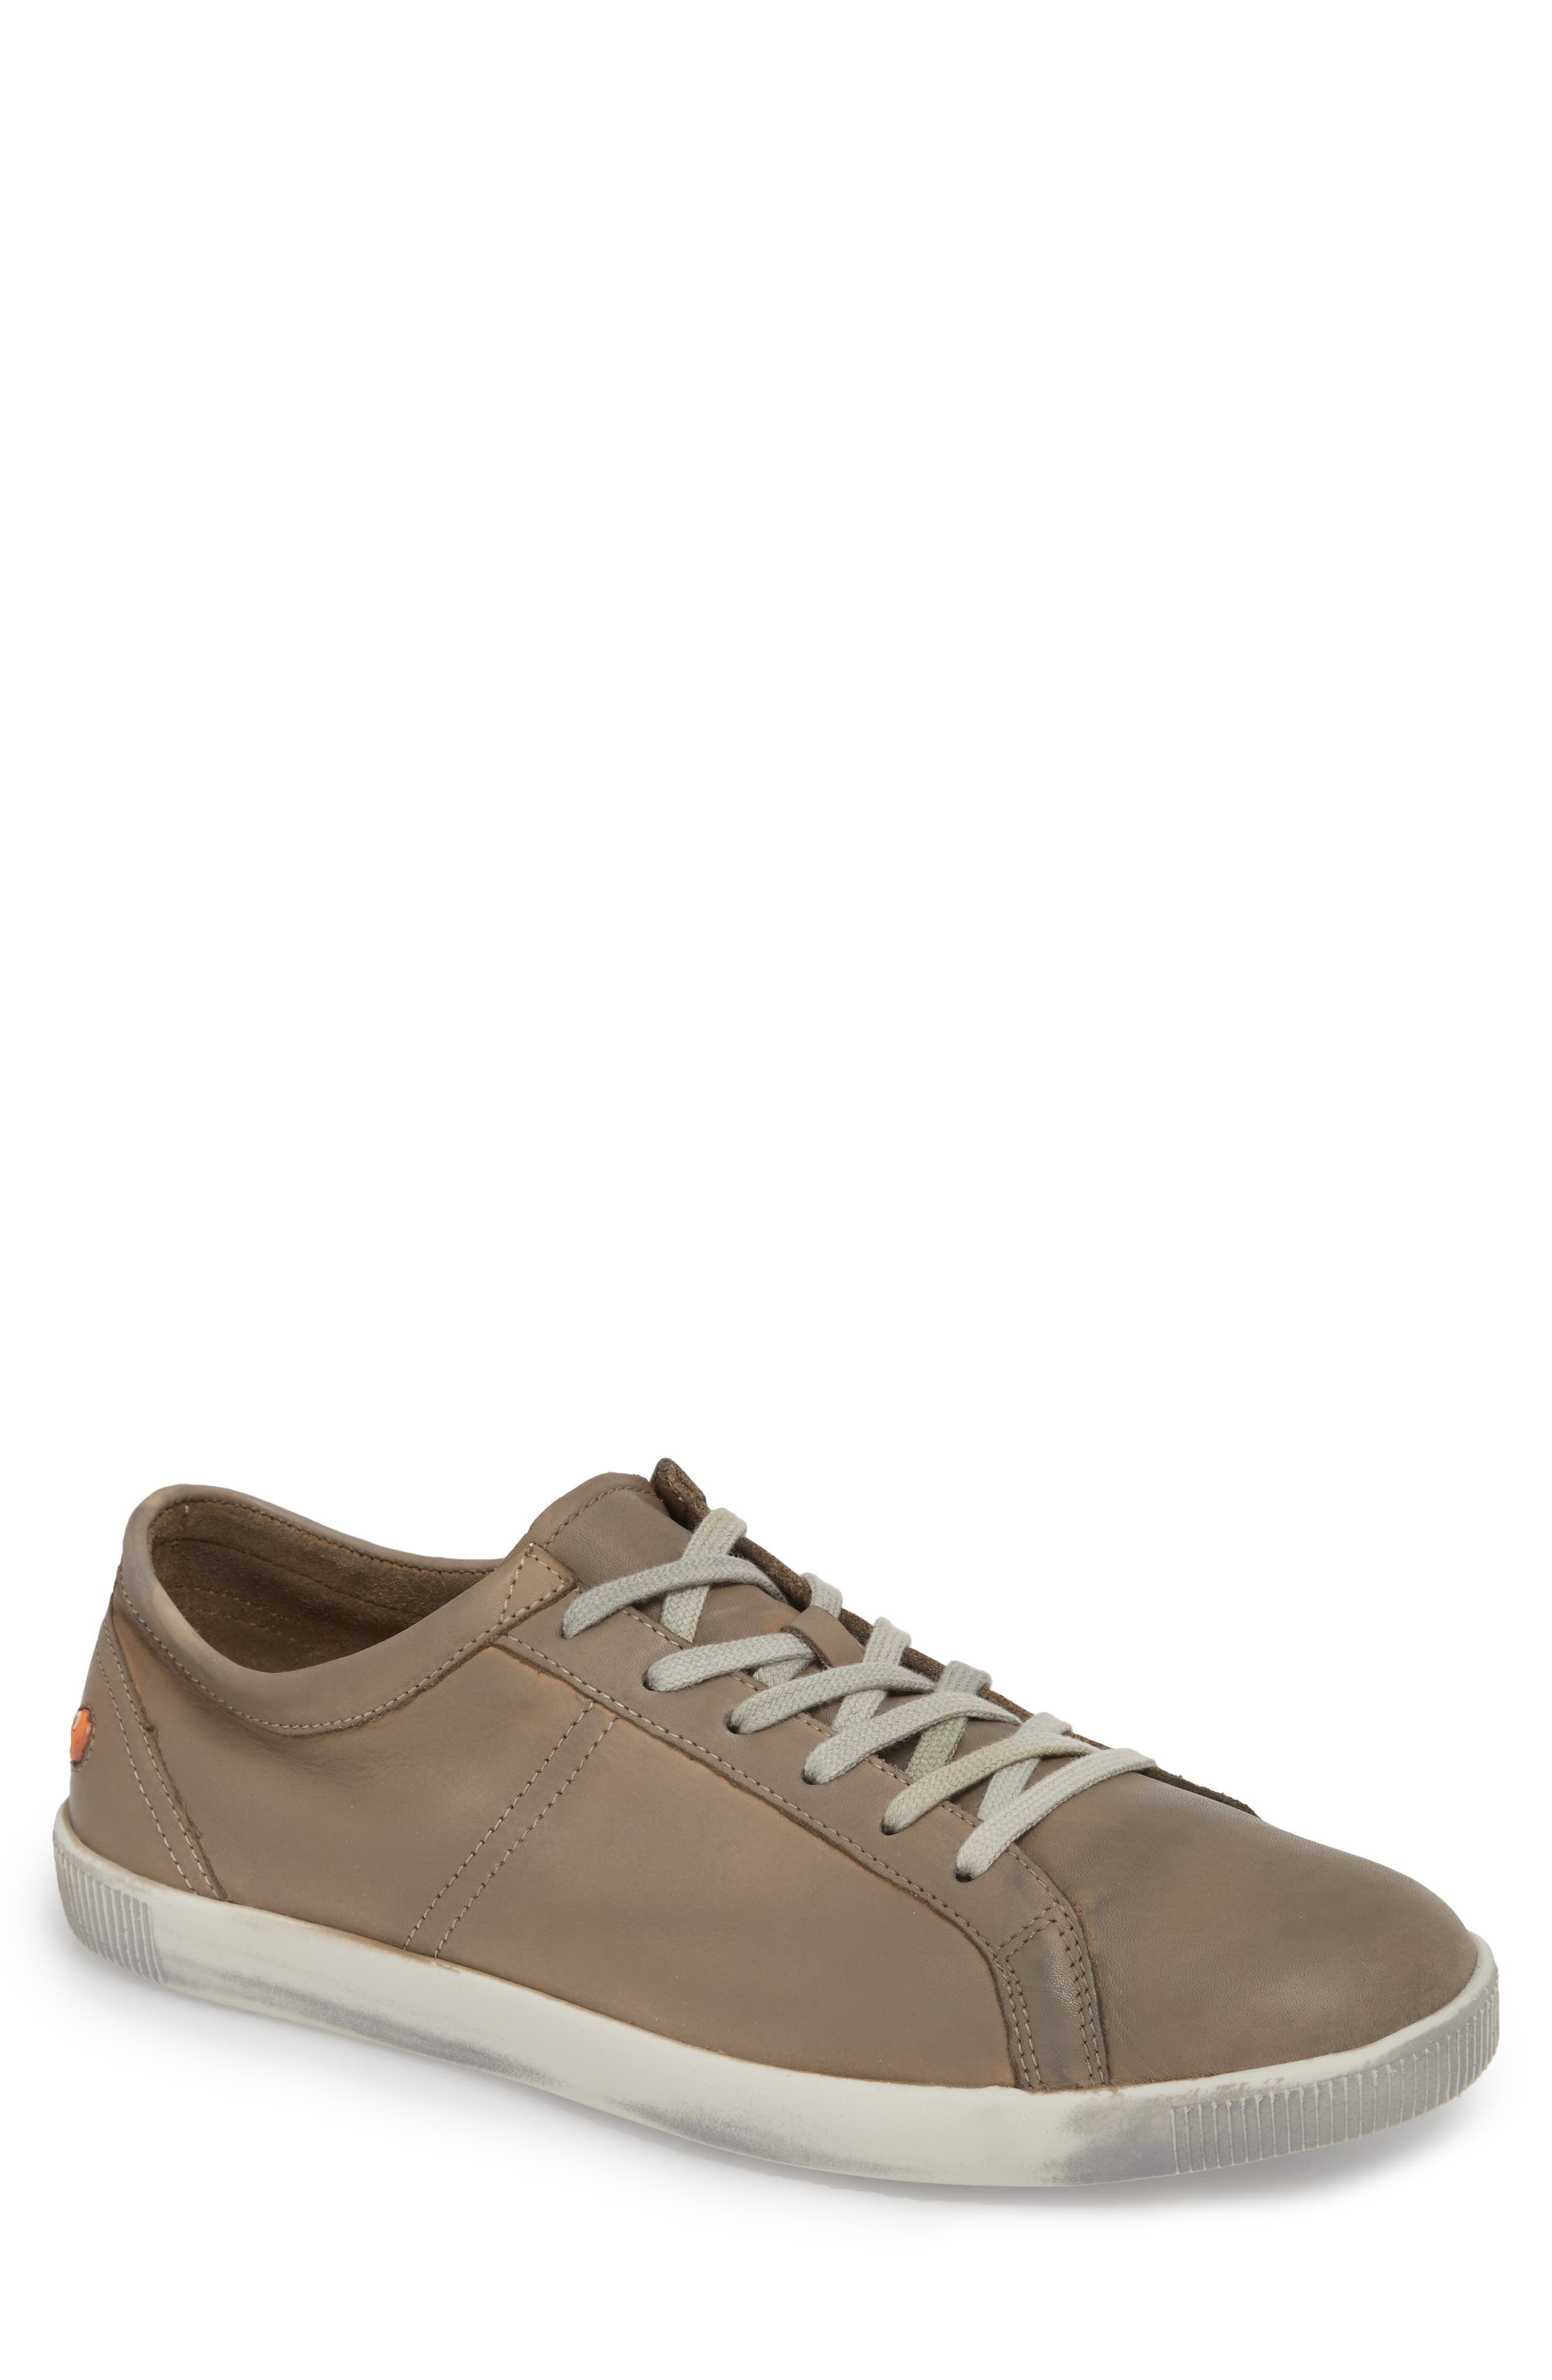 Tom Sneaker,                         Main,                         color, Taupe Leather